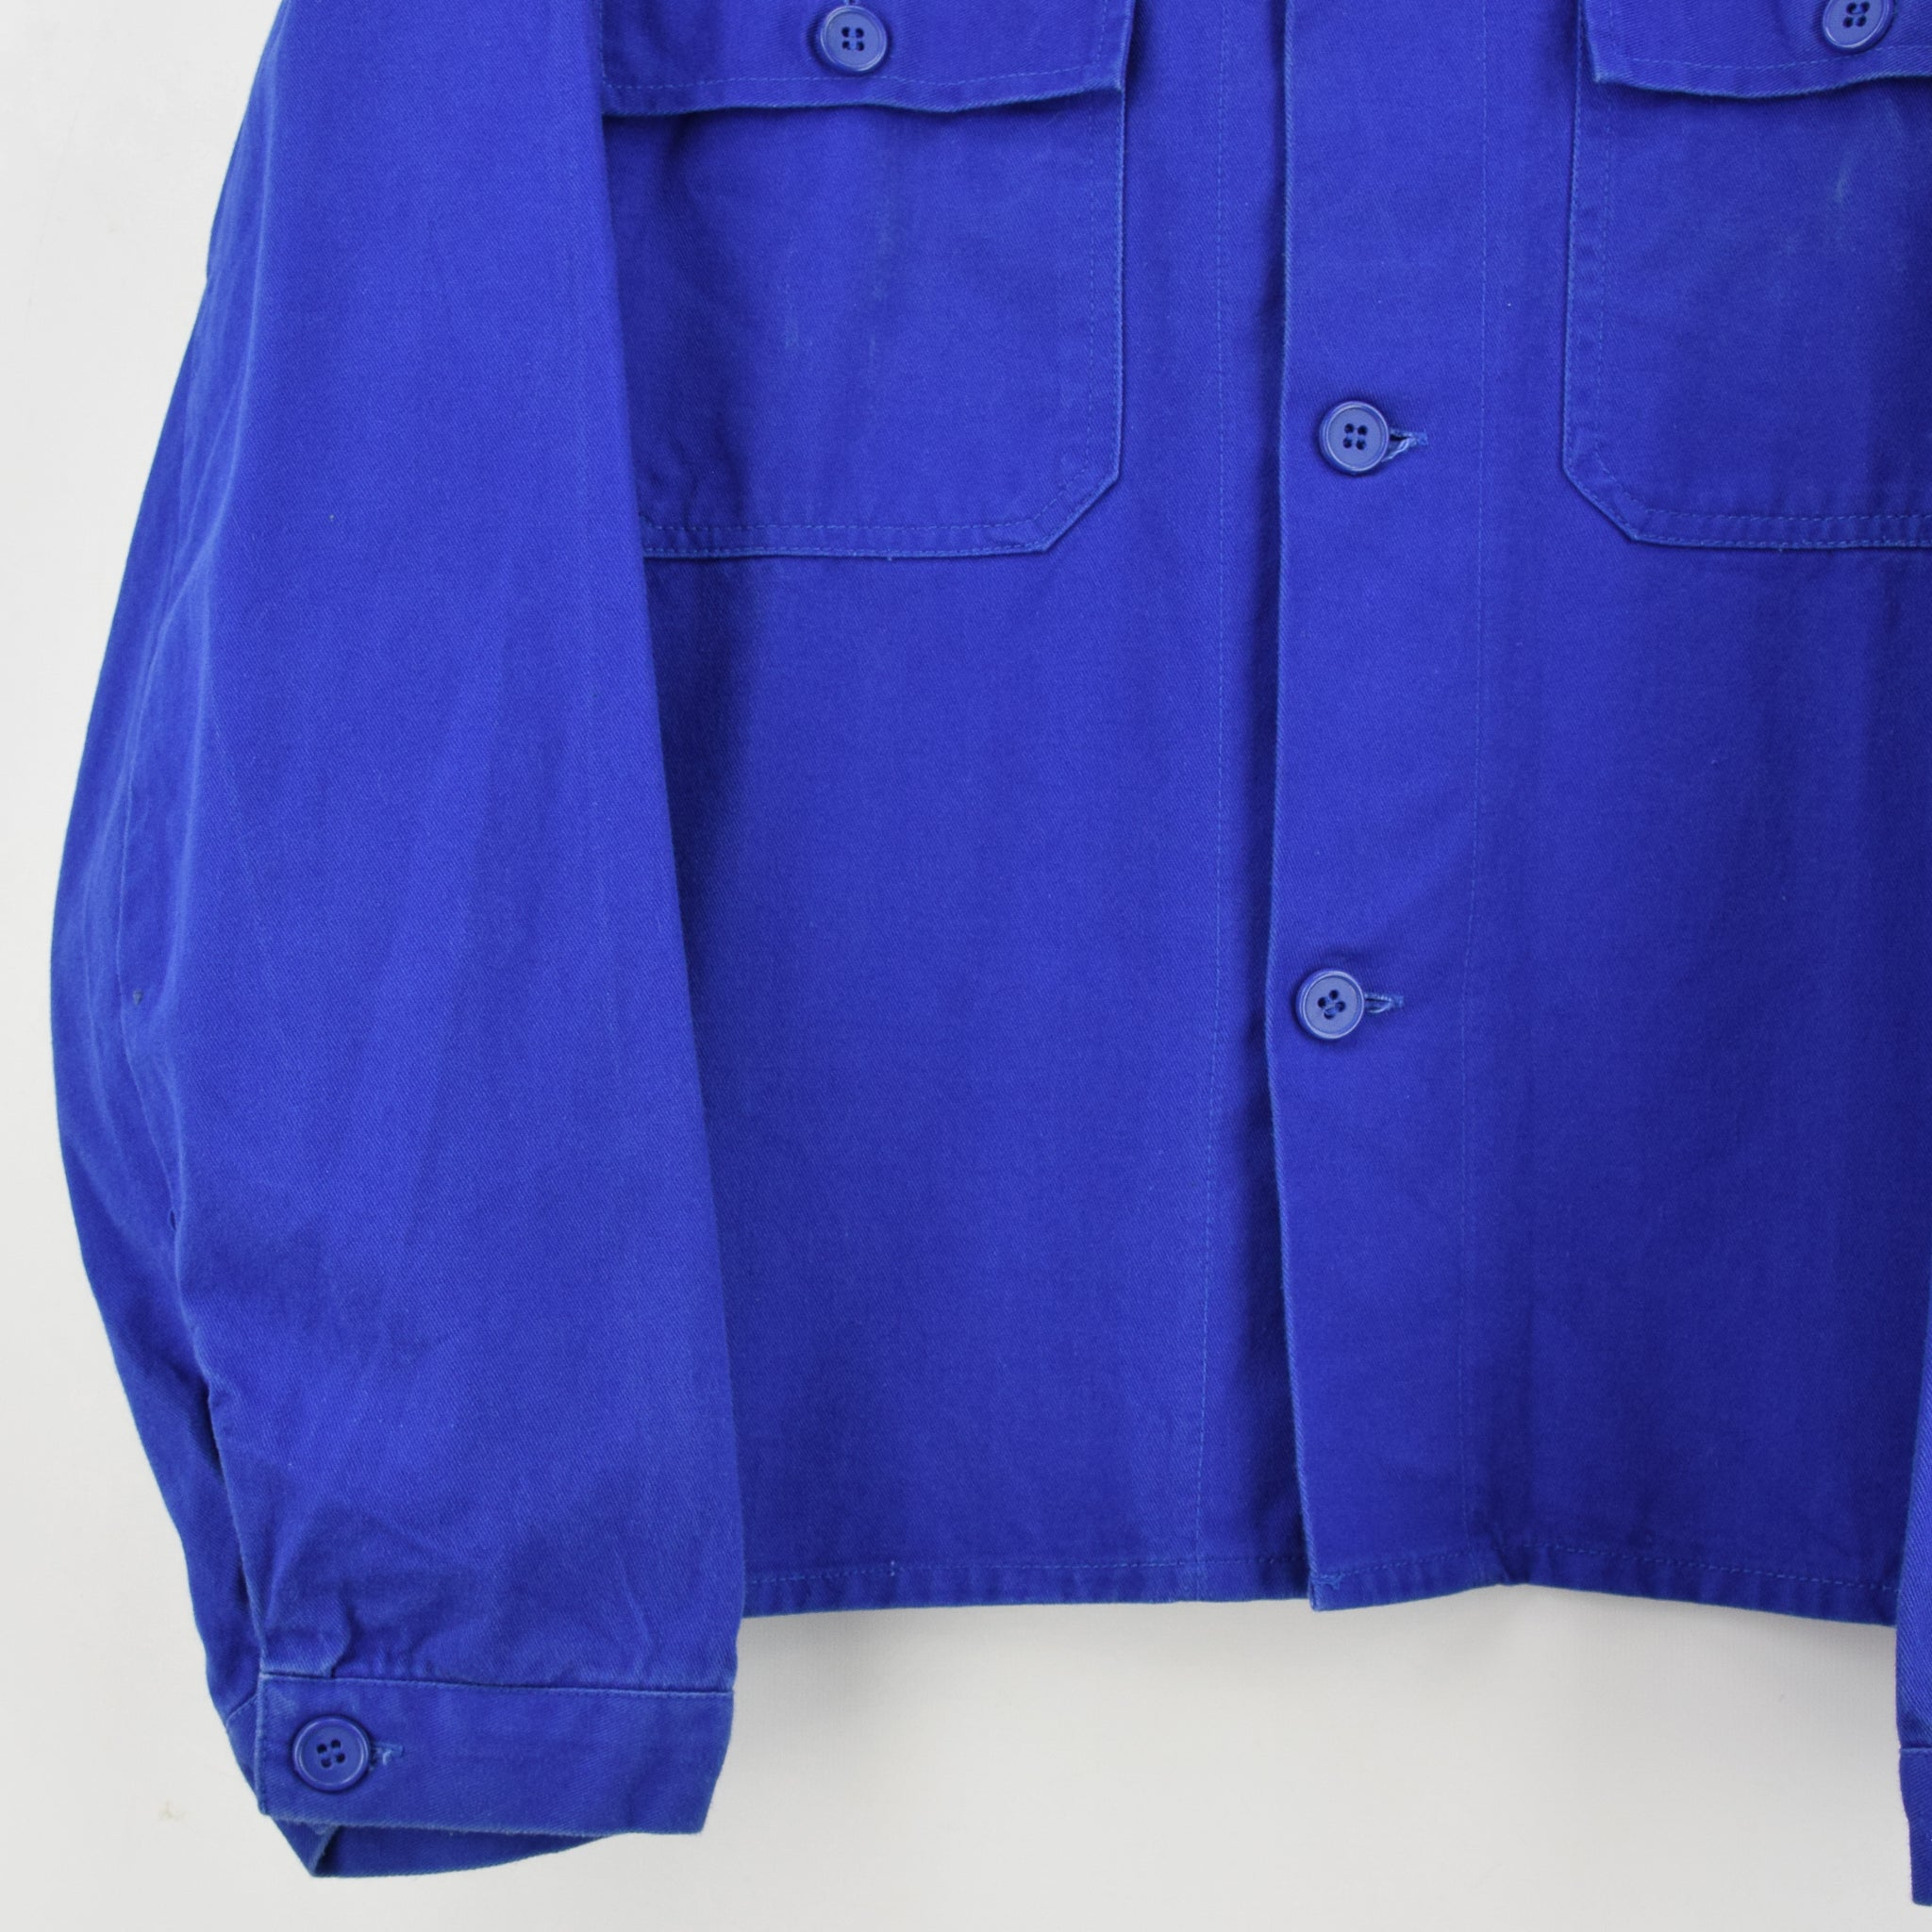 Vintage Bright Blue French Style Worker Sanforized Chore Shirt Jacket M / L front hem